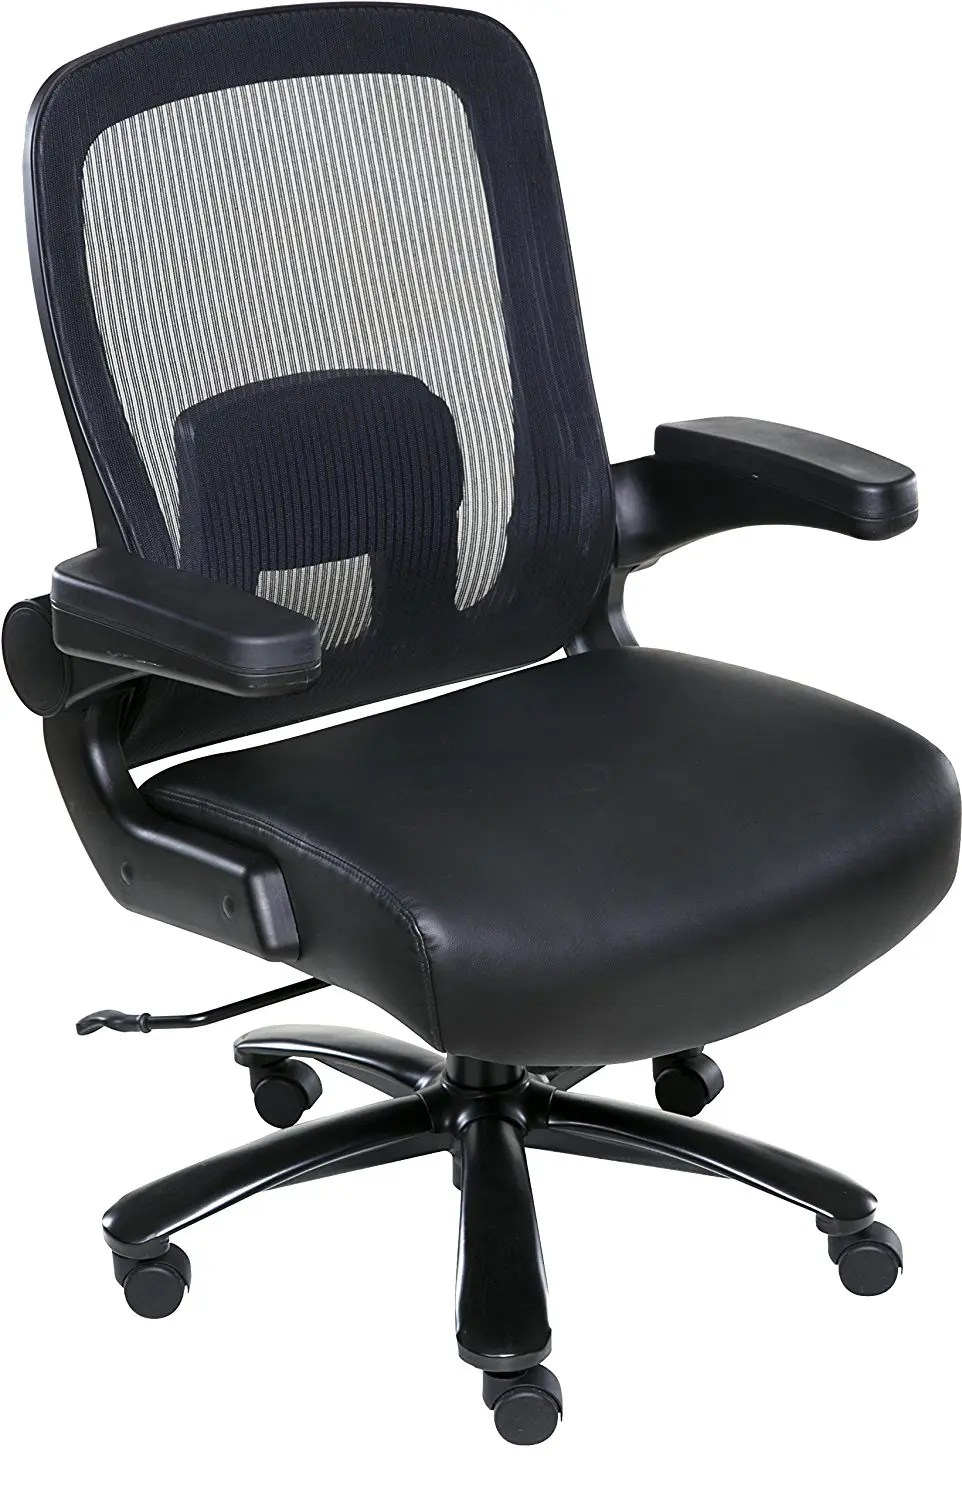 office chair supports 300 lbs eddie bauer high replacement tray onespace taft mesh back oversized executive 500 capacity - best heavy duty stuff